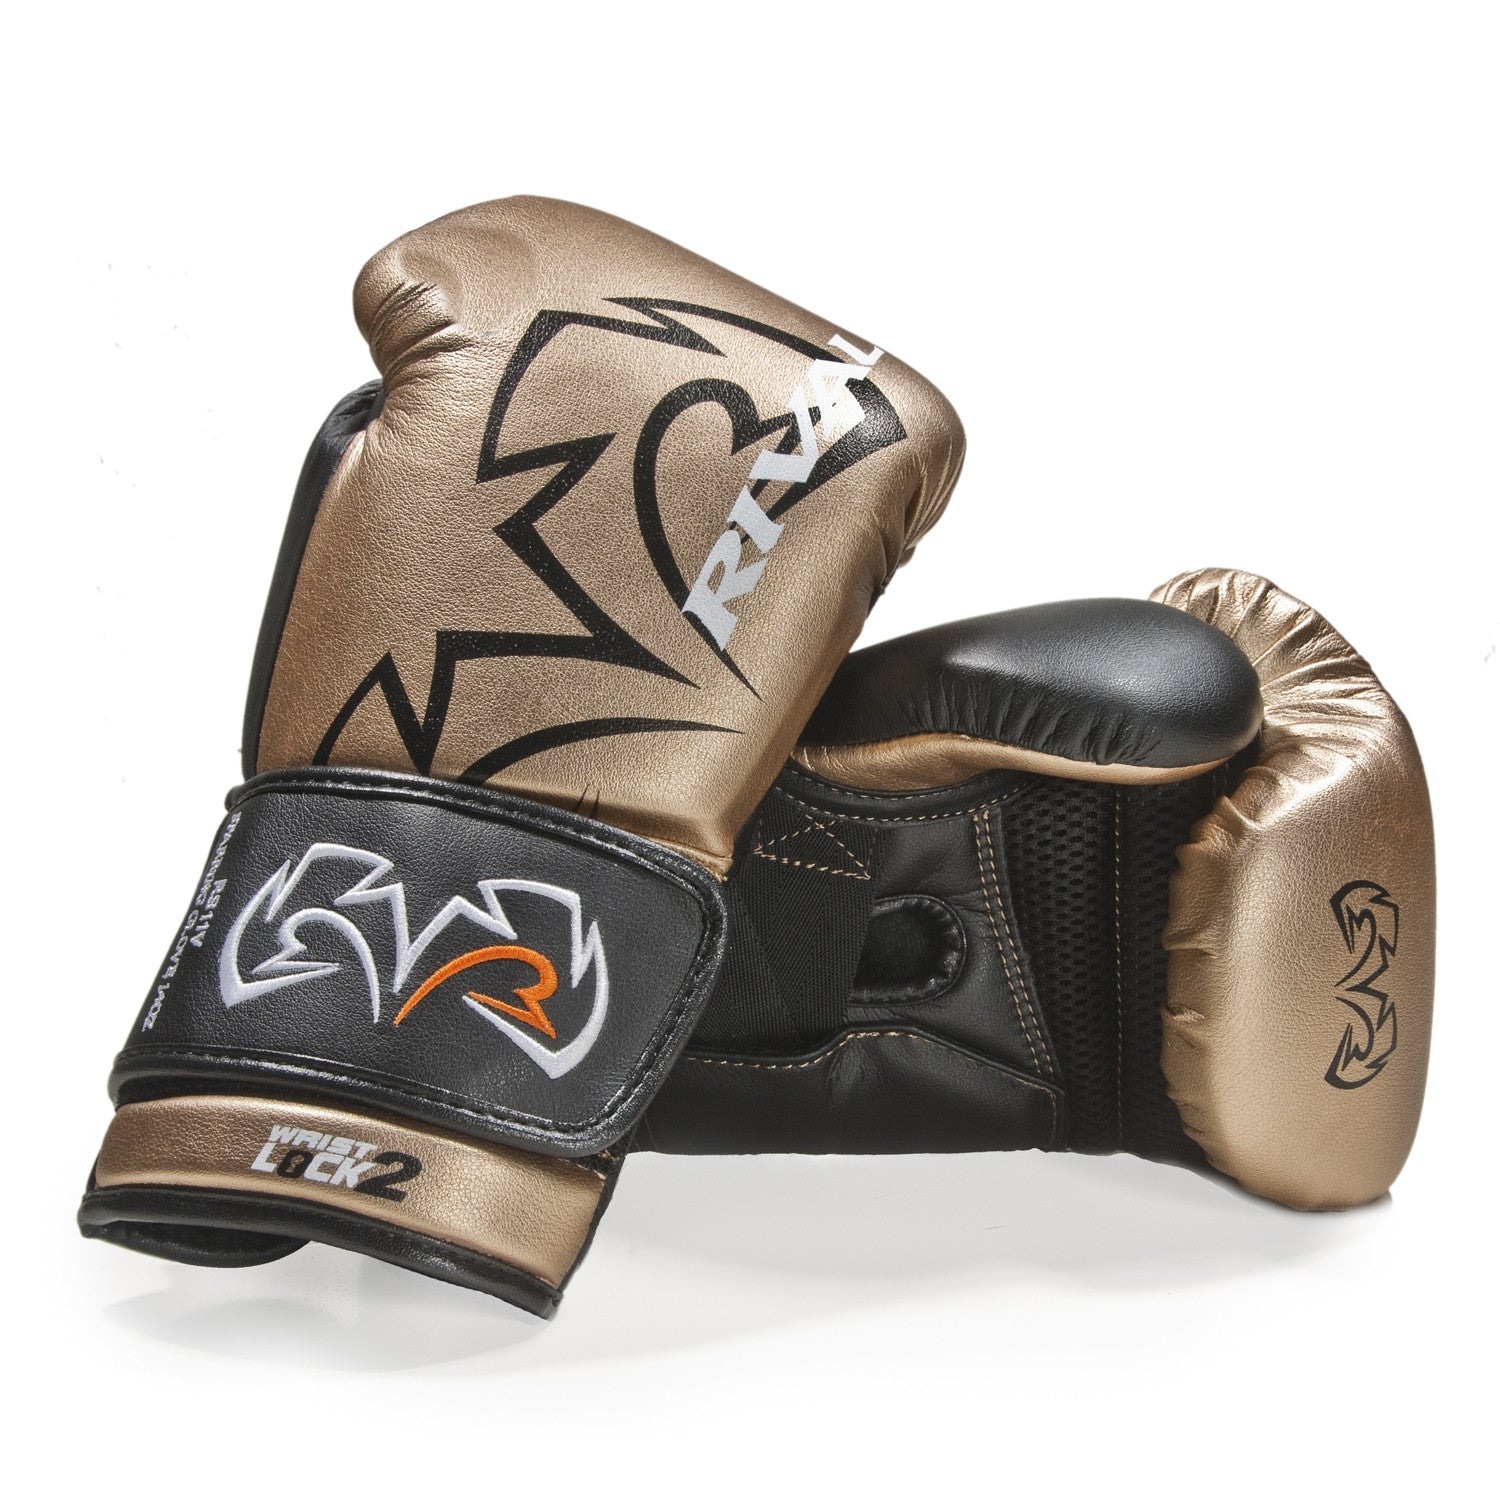 Evo Fitness Boxing Gloves Review: Rival Boxing RS11V-Evolution Sparring Gloves